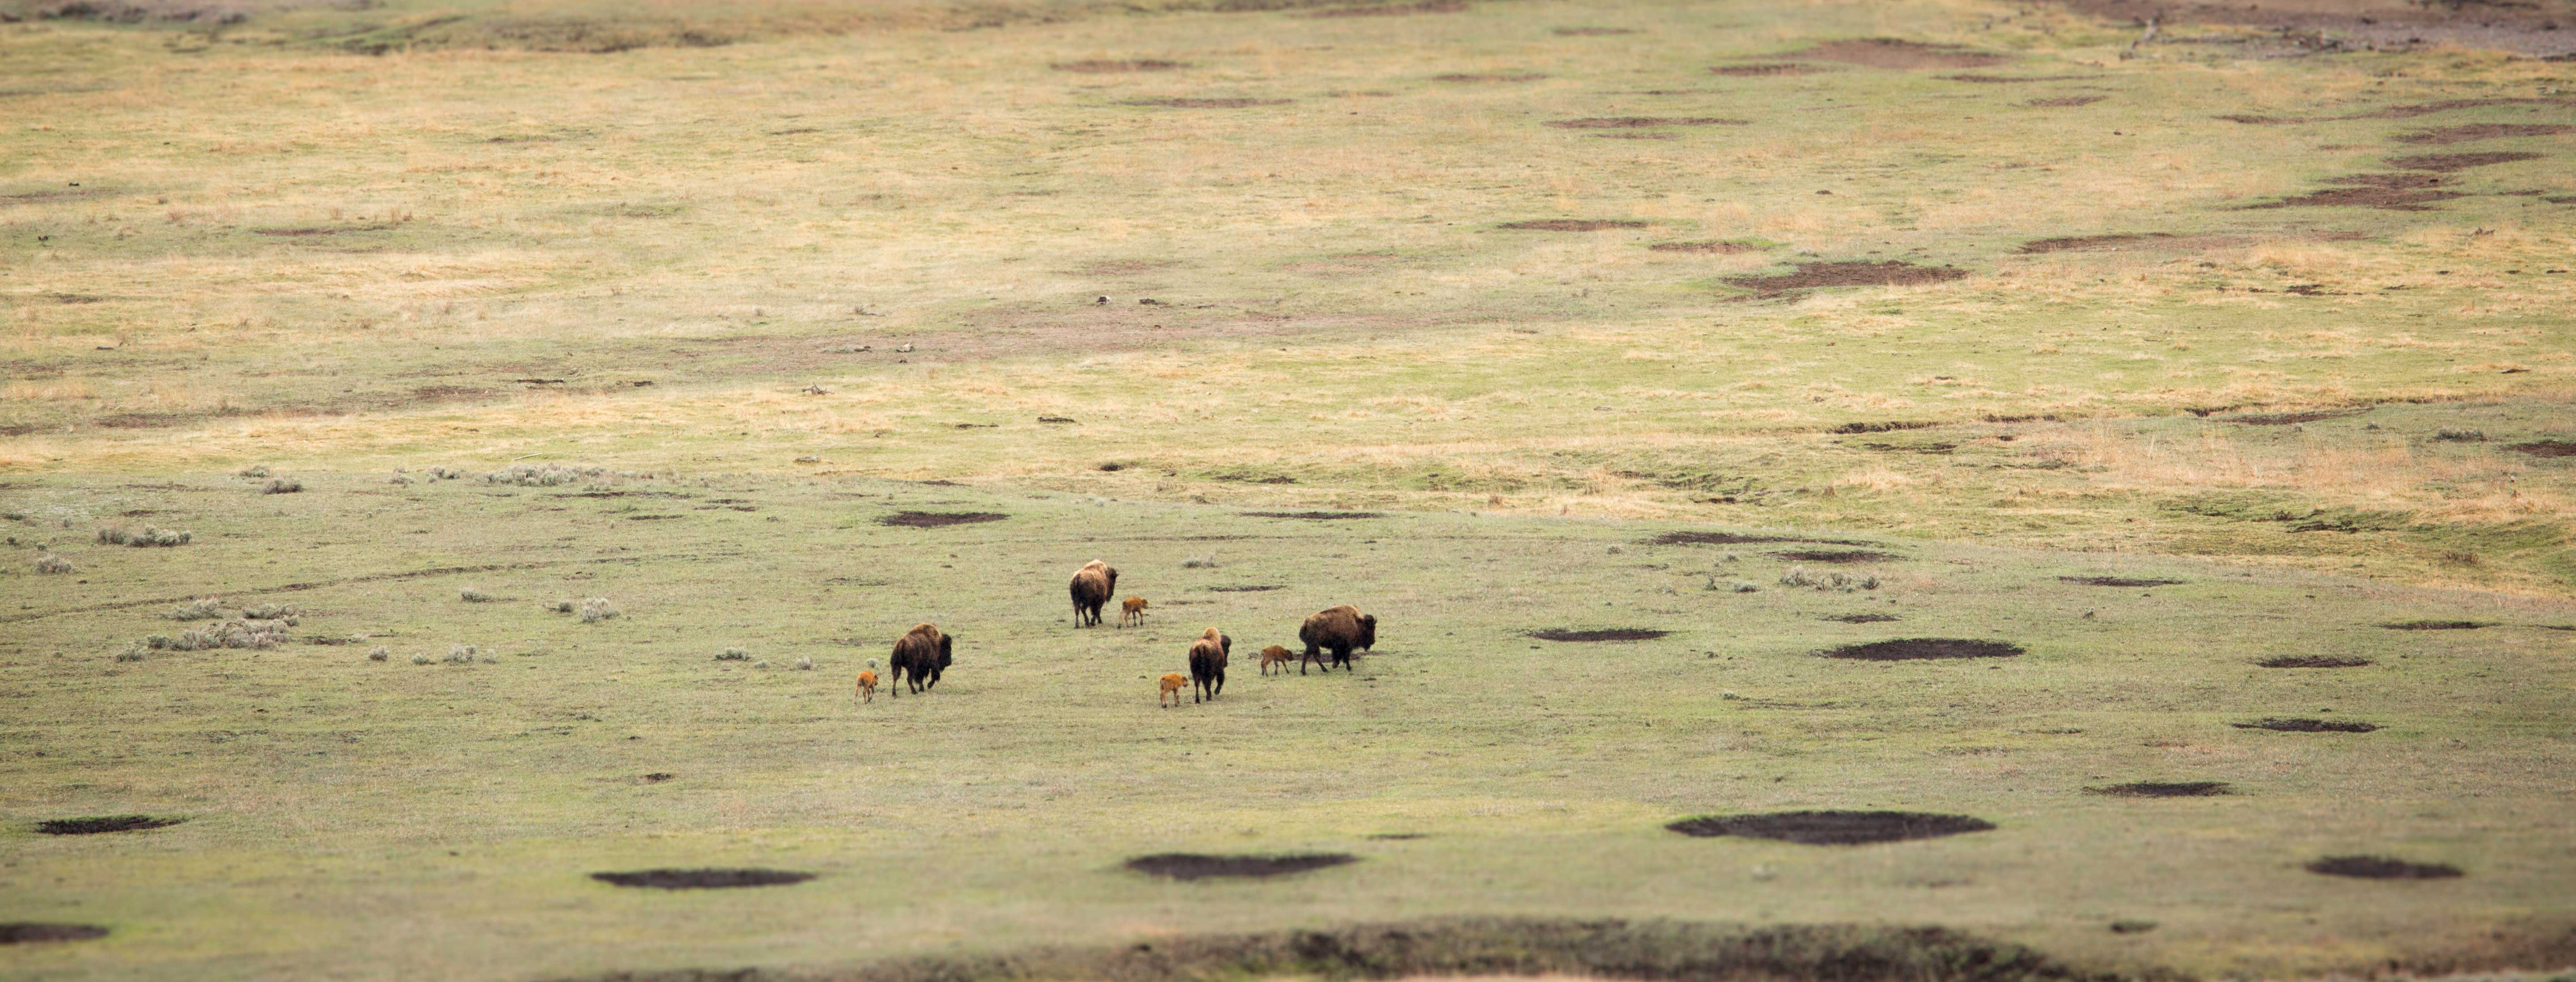 Bison cows and calves walk across valley